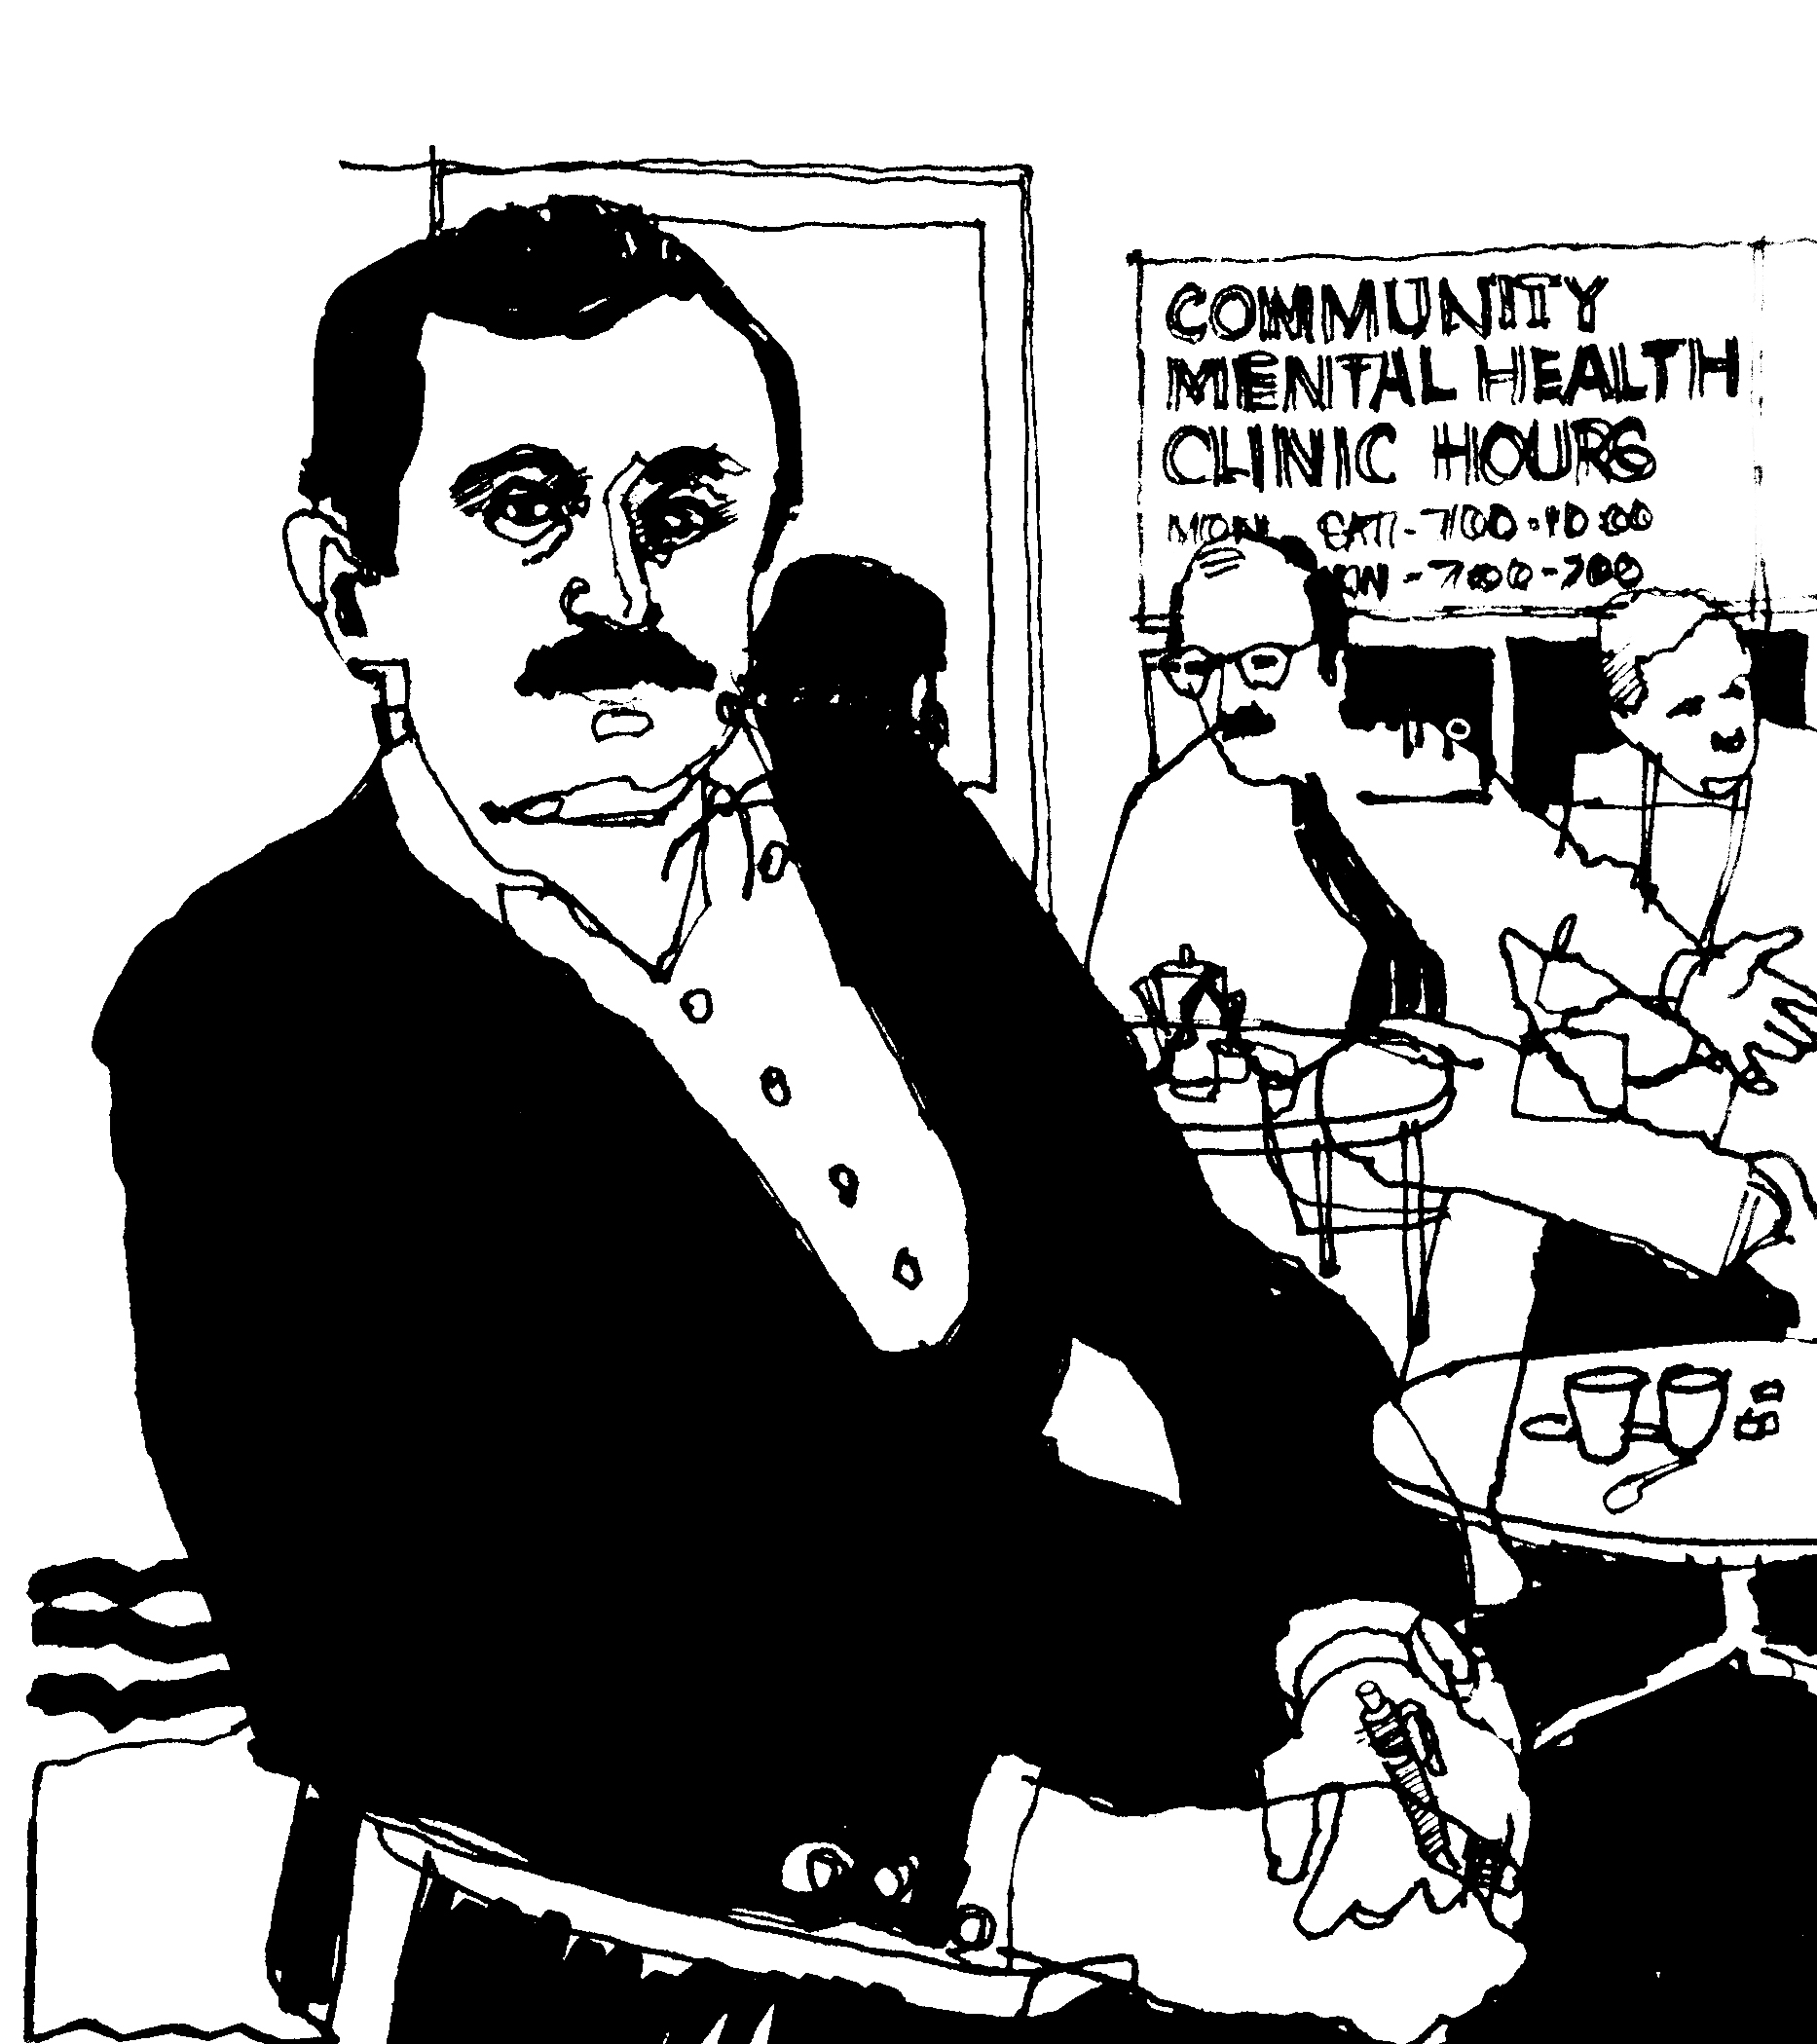 ink sketch of man in foreground and other people and sign for Community Mental Health Clinic in background, 1970s style